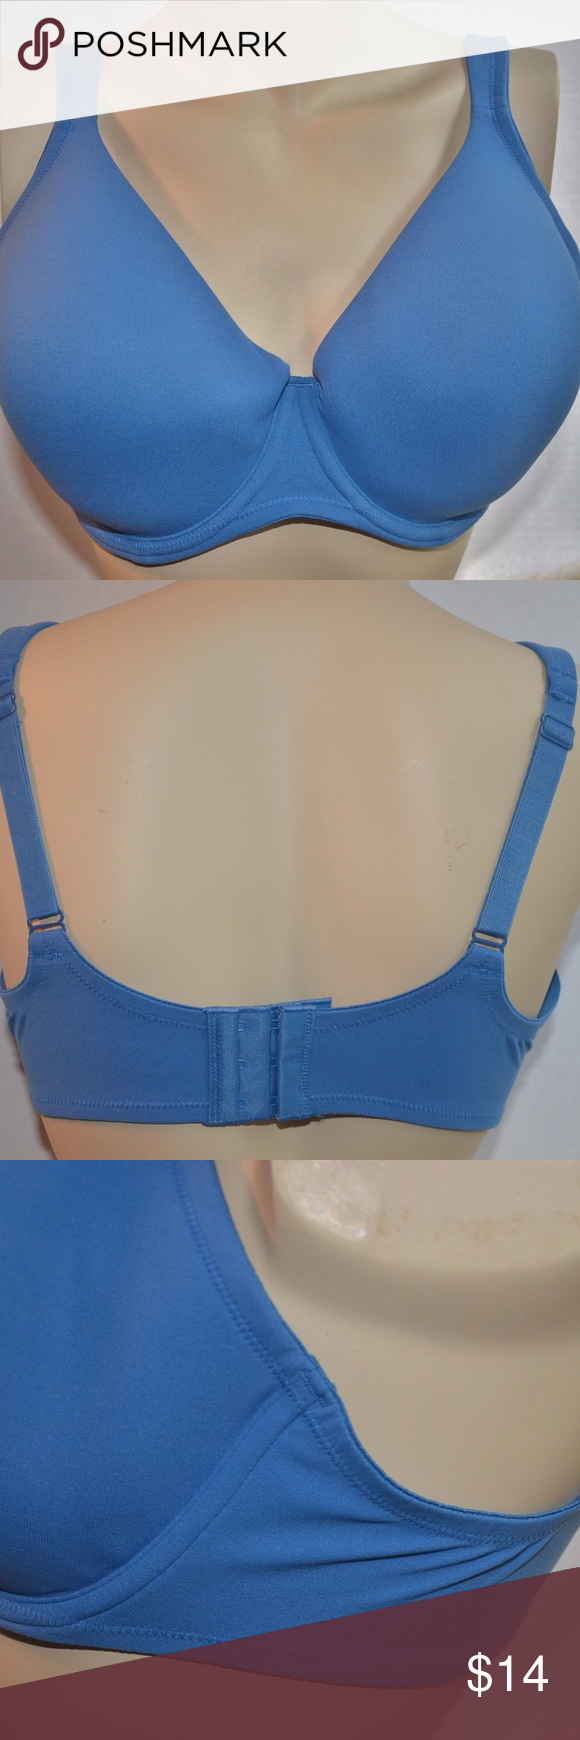 62b0800a47f053 Victoria Secret Full Coverage Blue 38B Bra NWOT Made of nylon and spandex.  This is